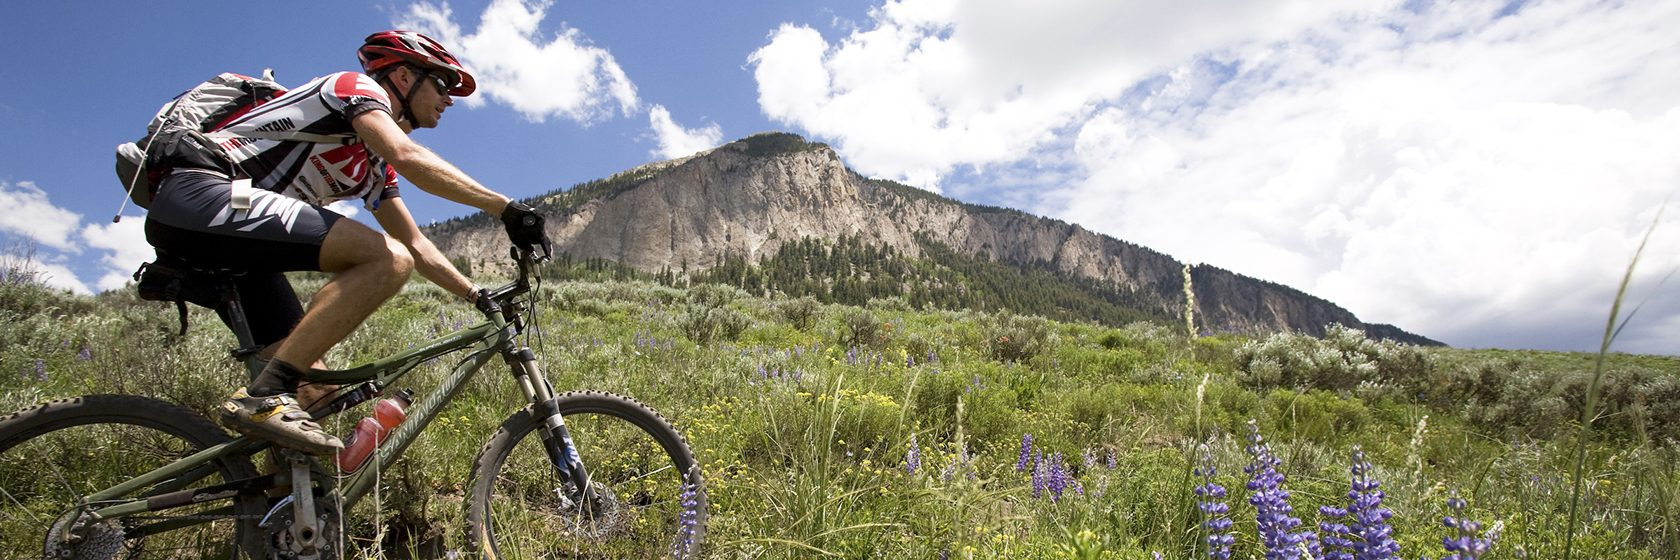 Colorado Trail Singletrack - our most epic advanced tour